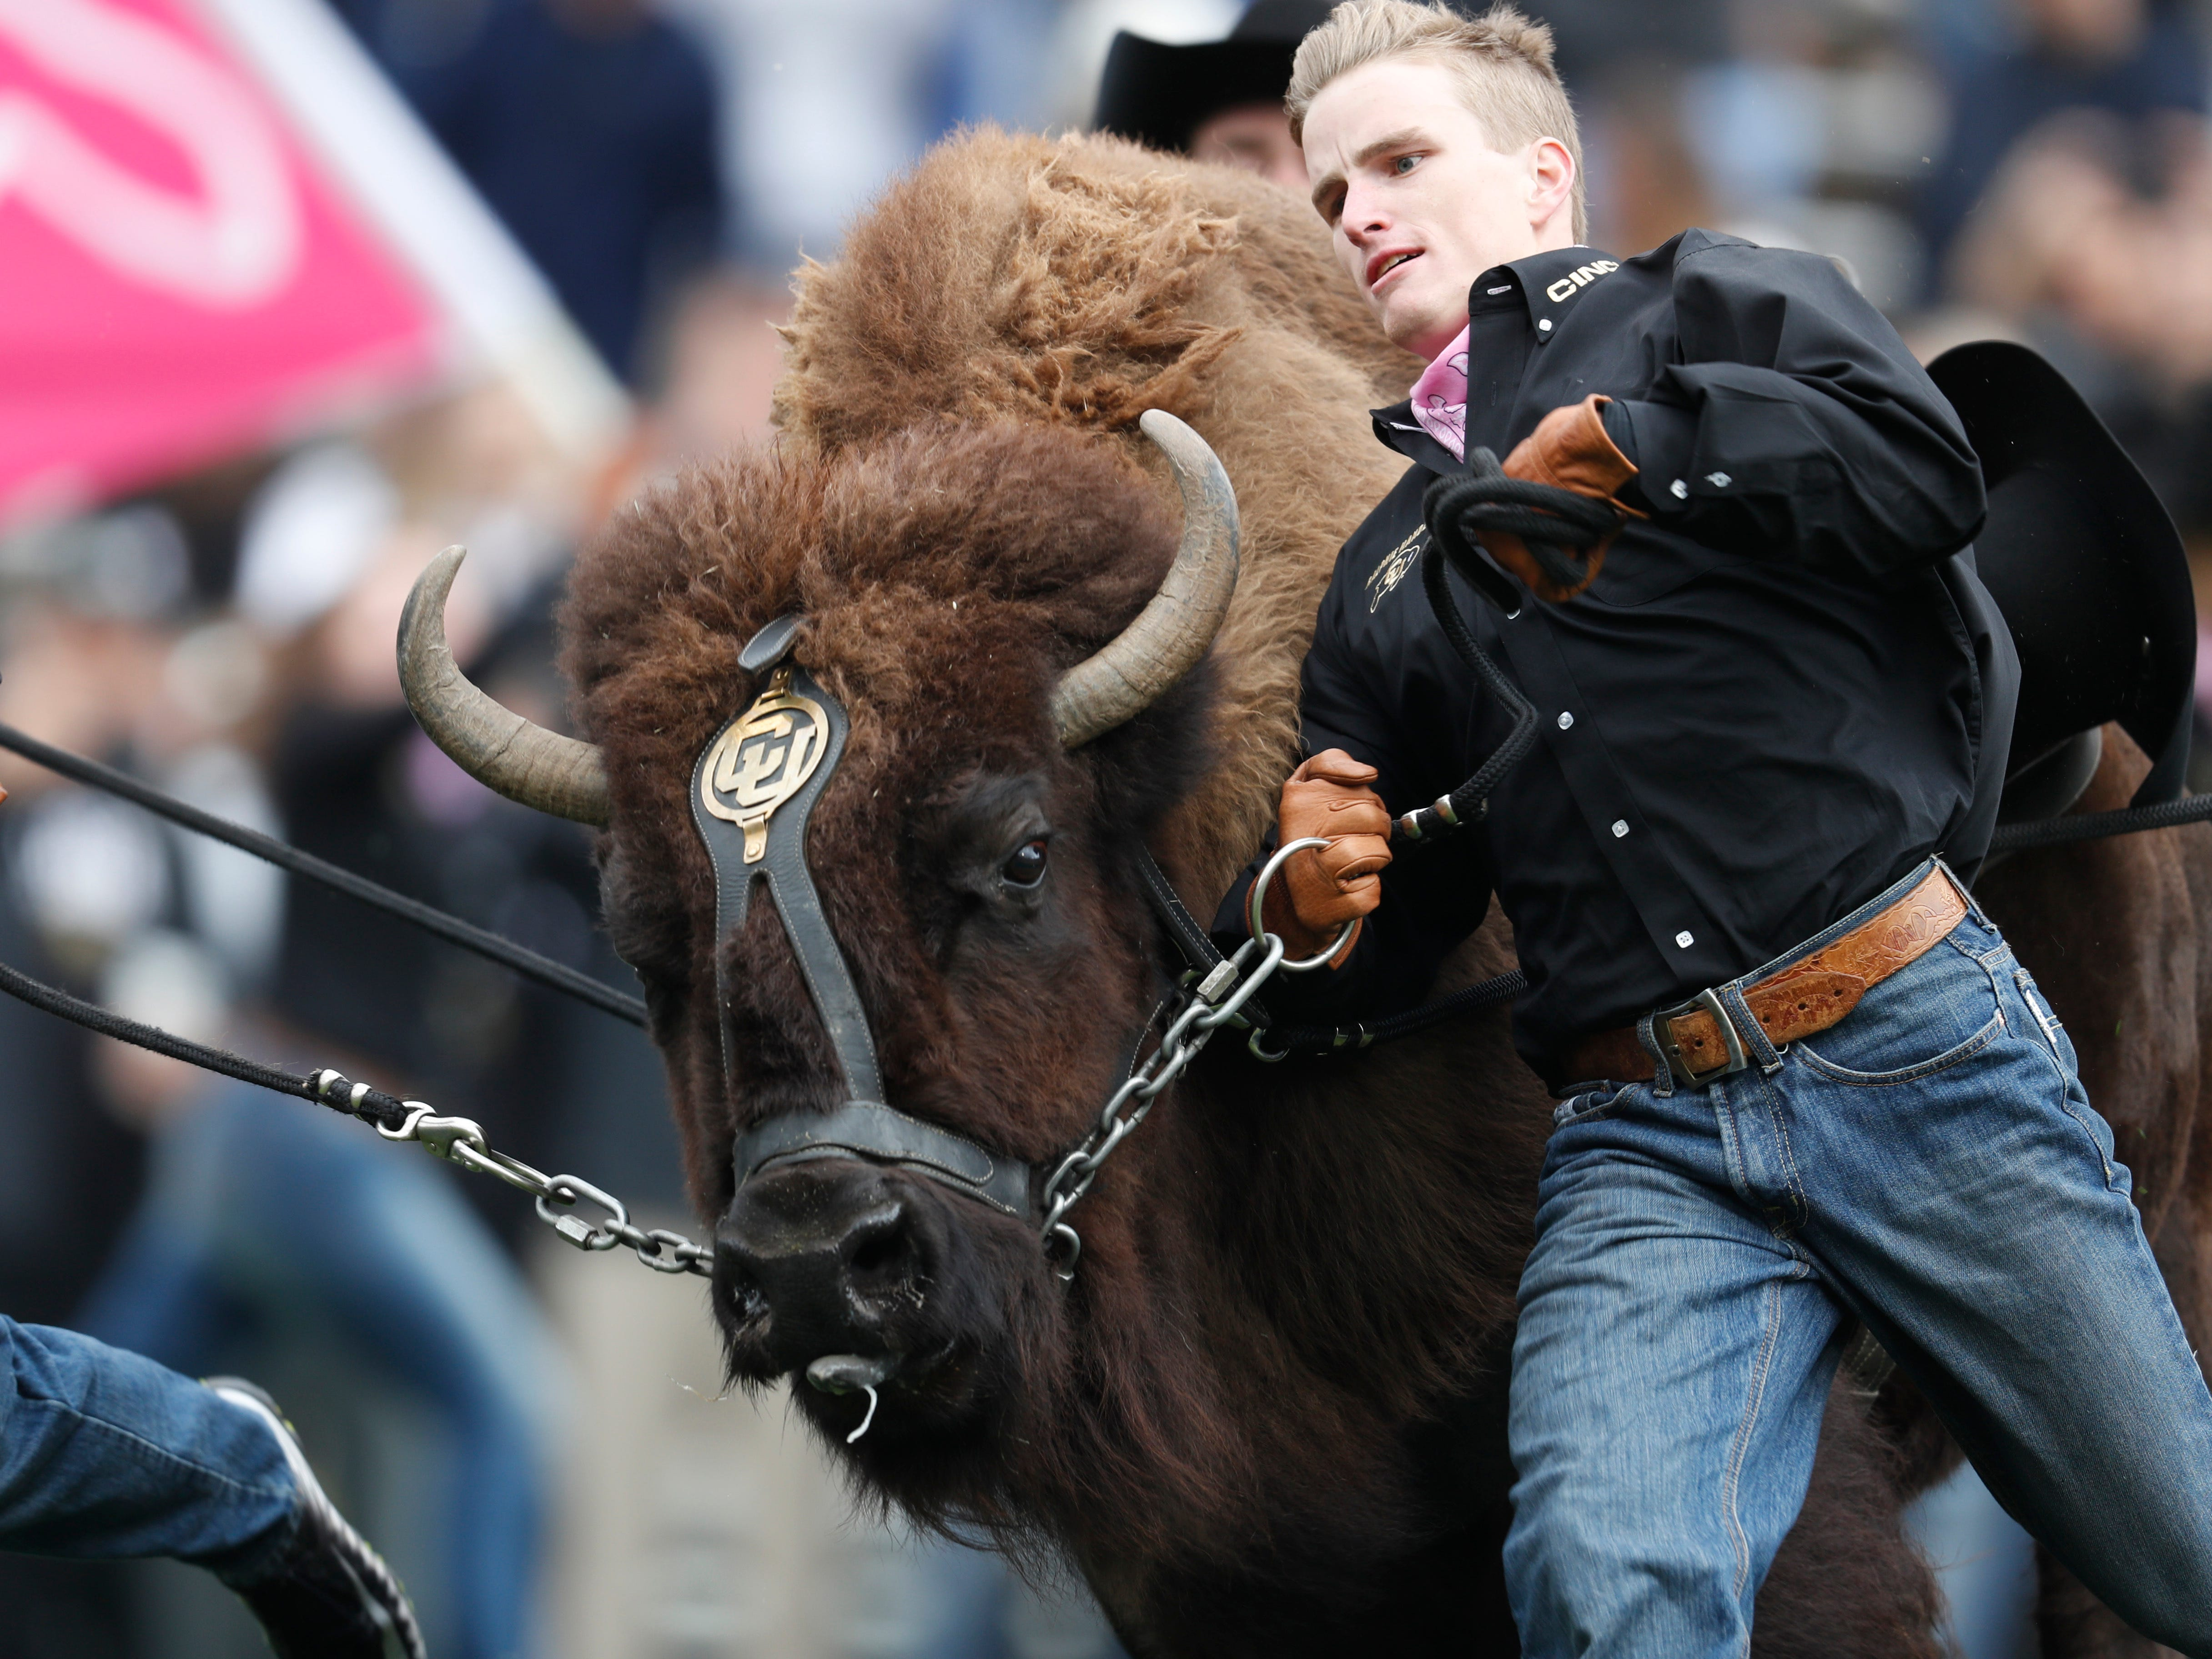 You wouldn't want to get in front of Colorado's mascot when Ralphie rumblin'.